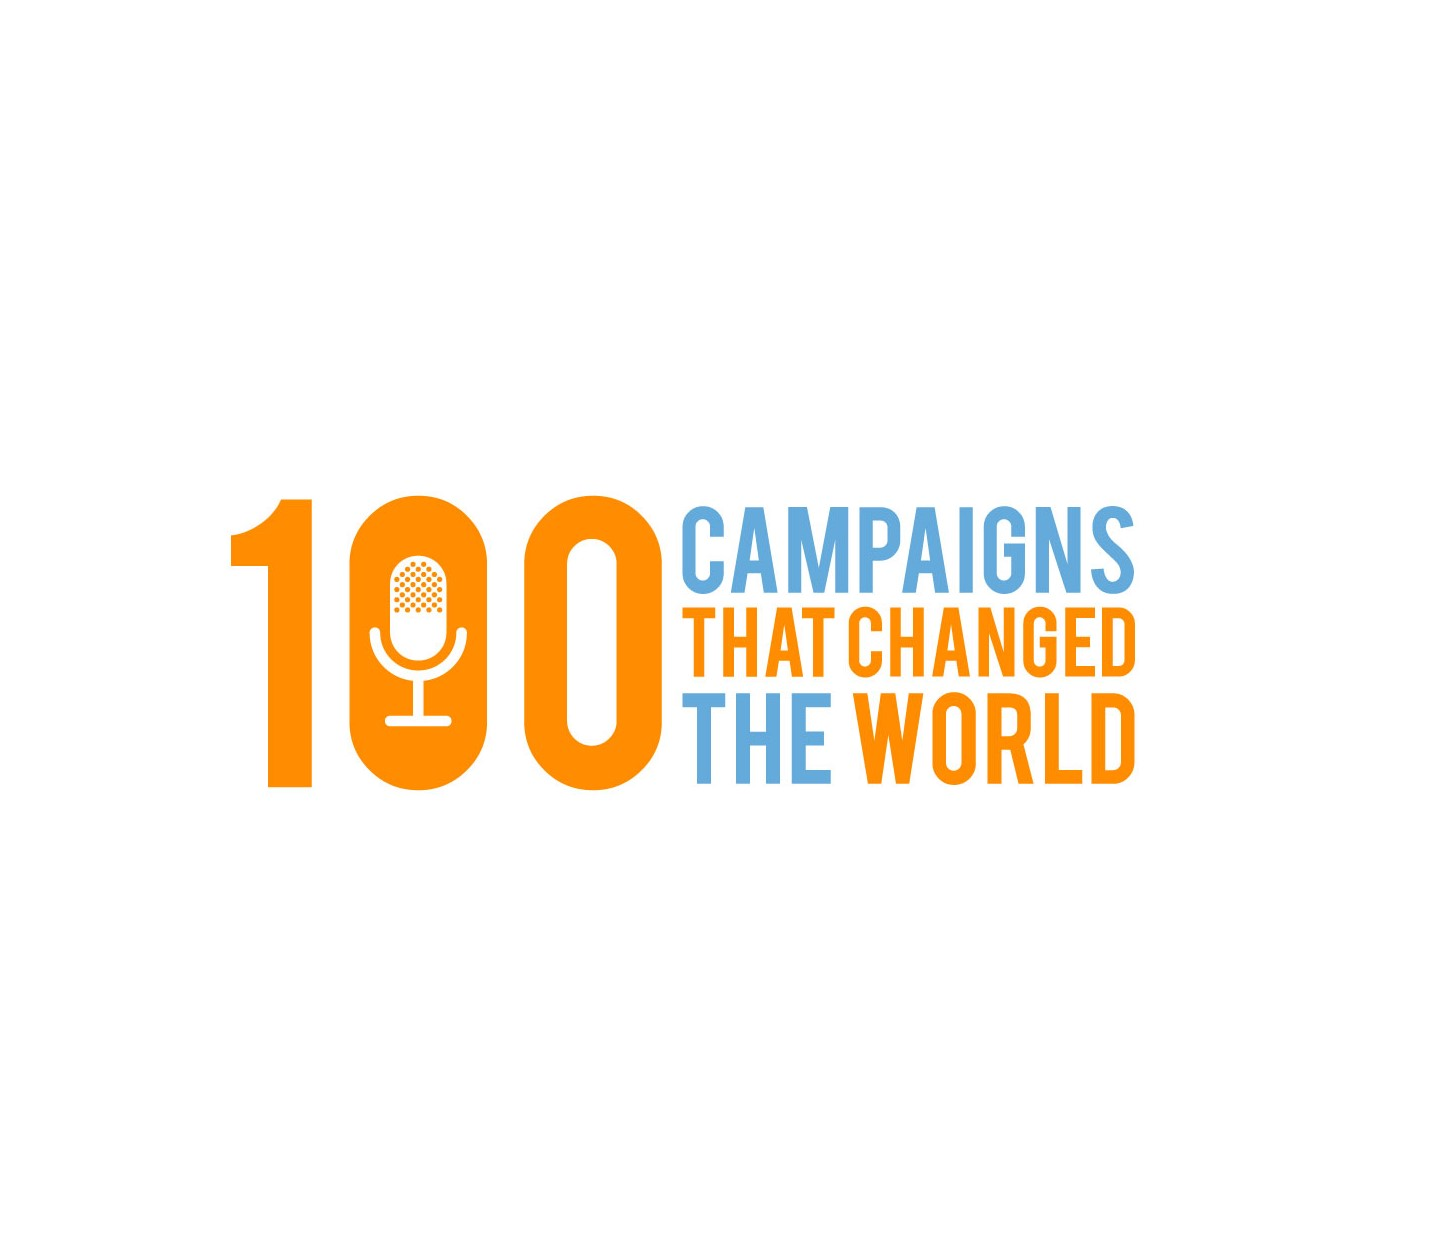 100 Campaigns that Changed the World